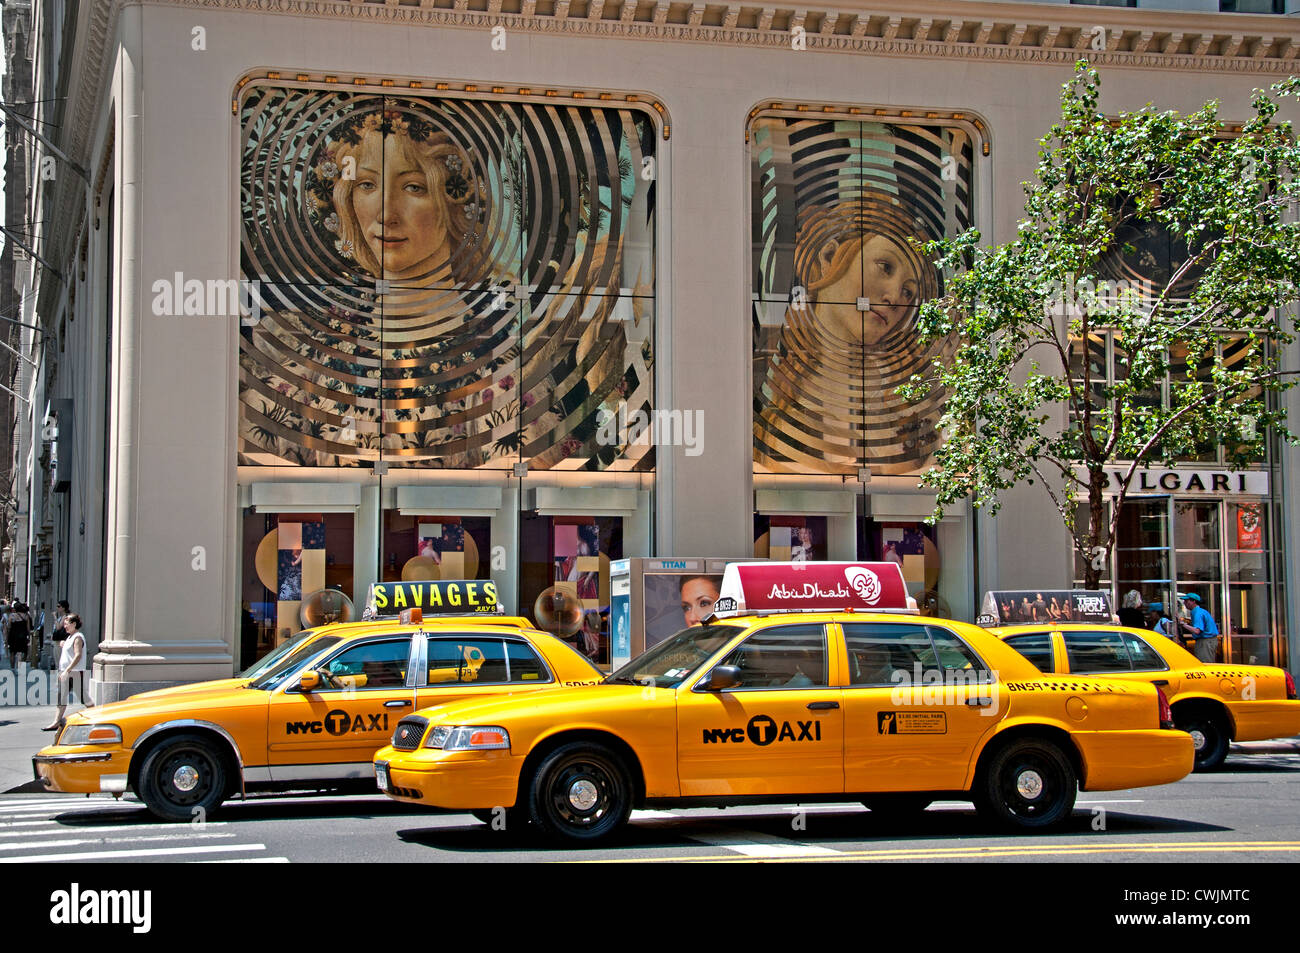 Bvlgari Bulgari E 57th Street New York City Manhattan American United States of America - Stock Image